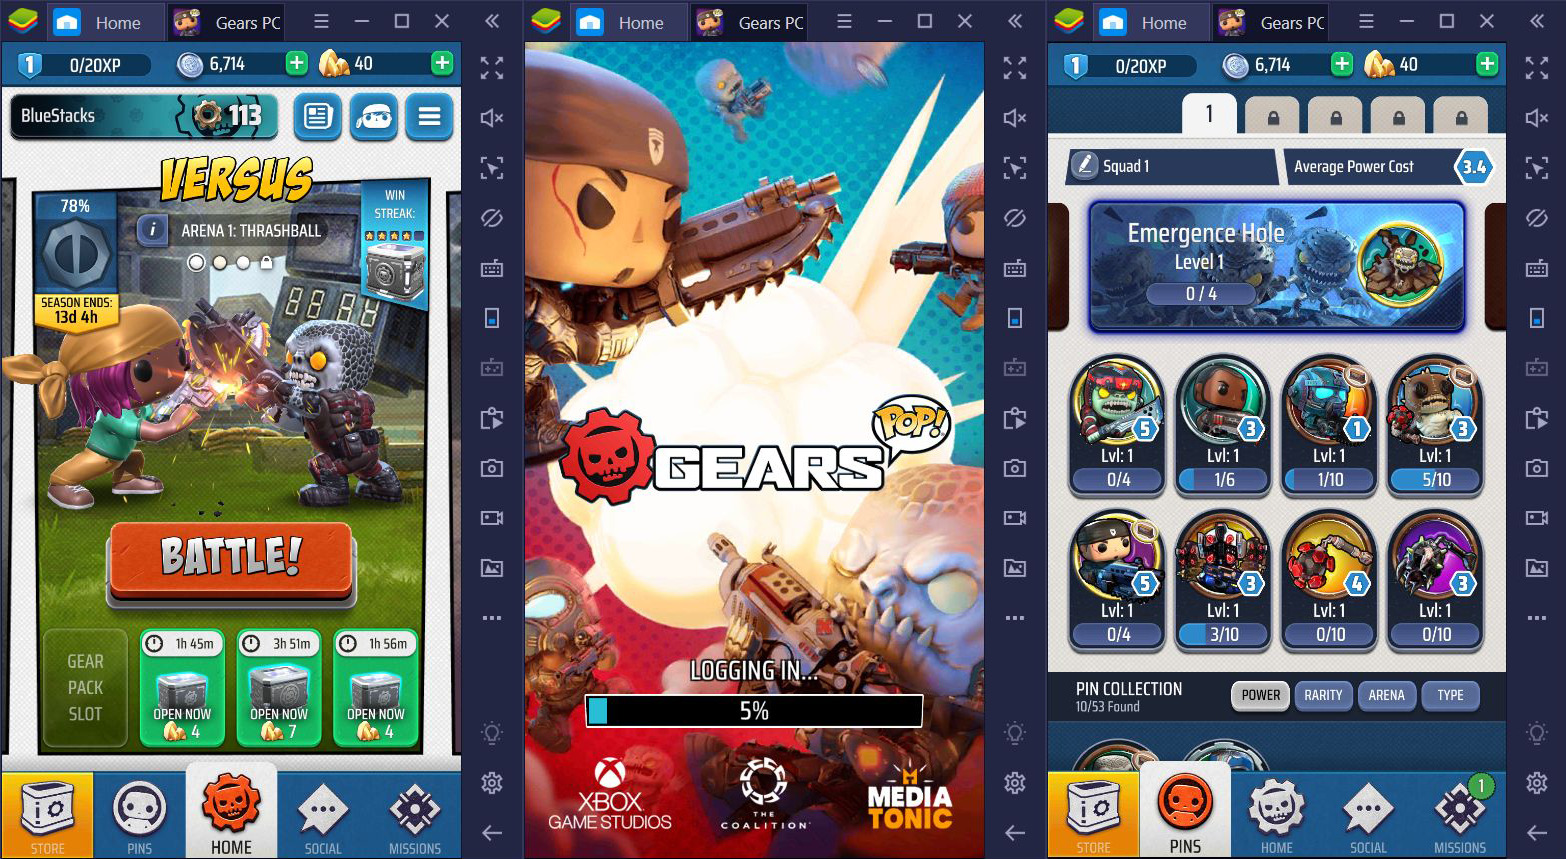 Tips and Tricks for Gears POP! The Gears of War Android Game